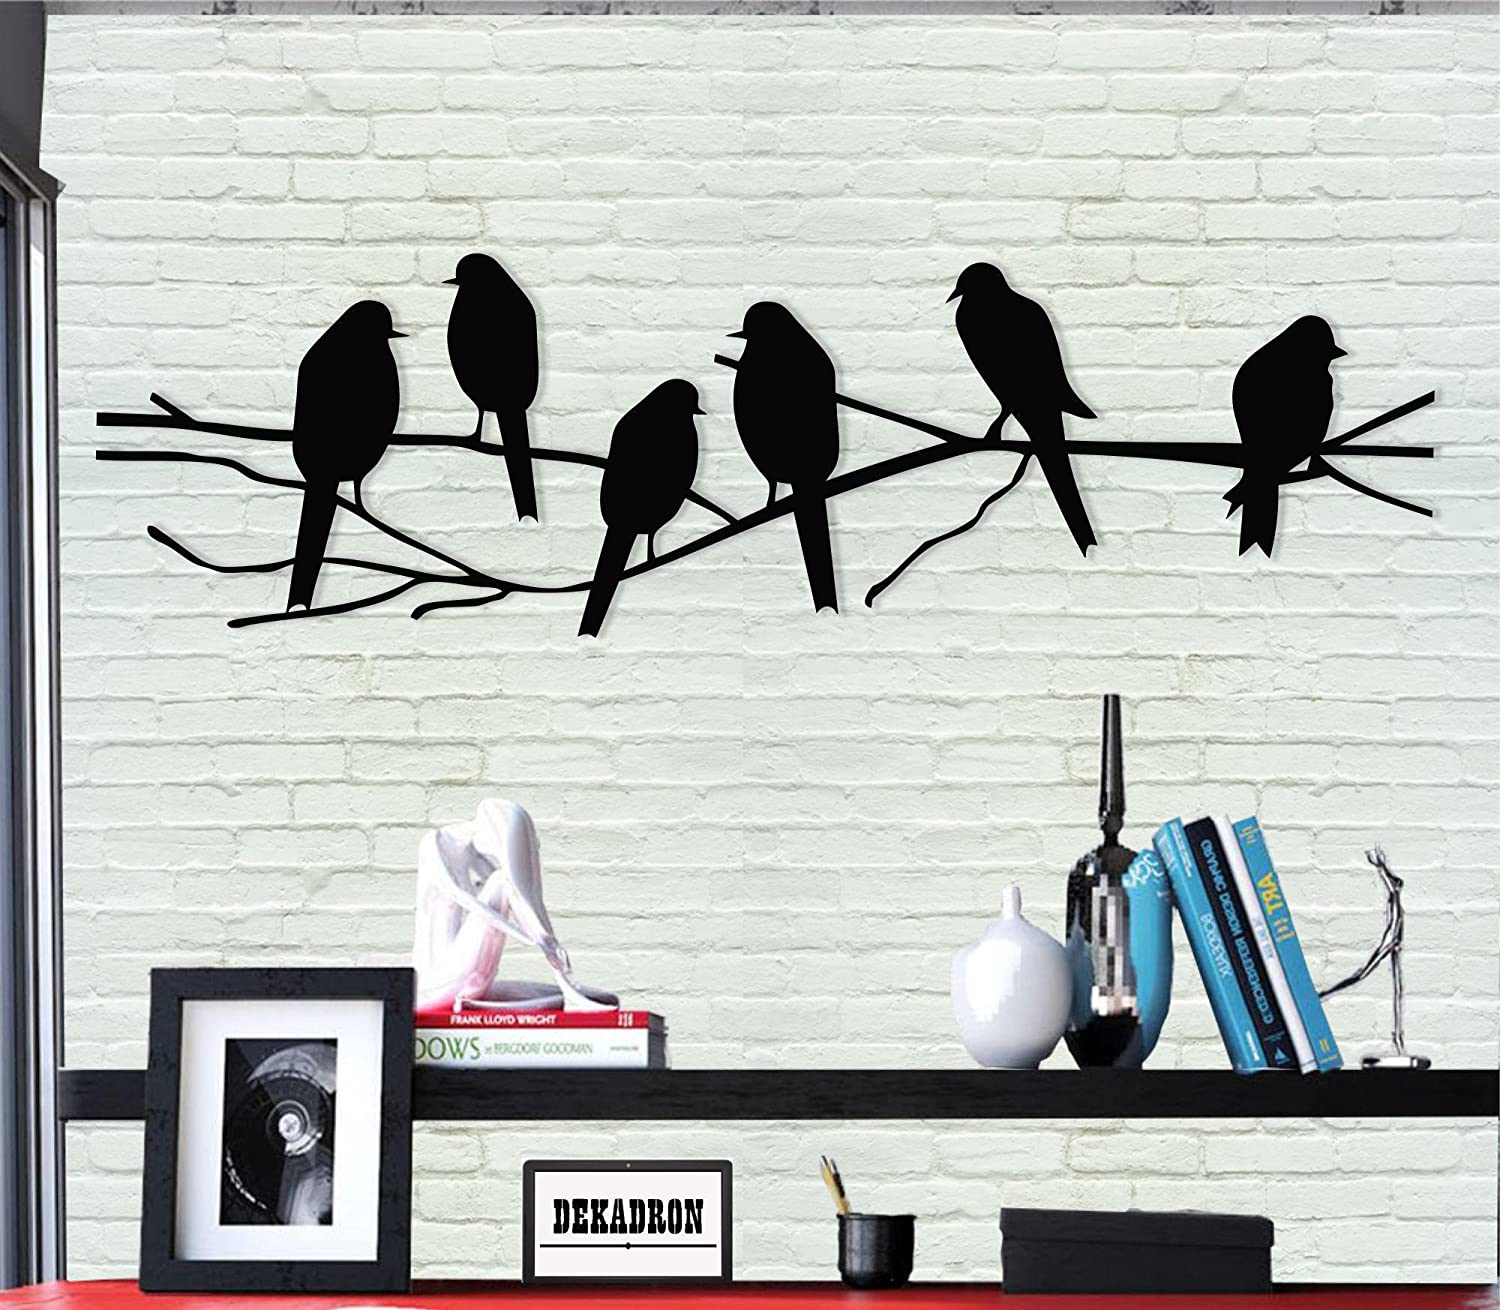 Amazon Com Metal Wall Art Birds Wall Silhouette Metal Wall Decor Home Office Decoration Bedroom Living Room Decoration 24 W X 8 H 61x20cm Everything Else